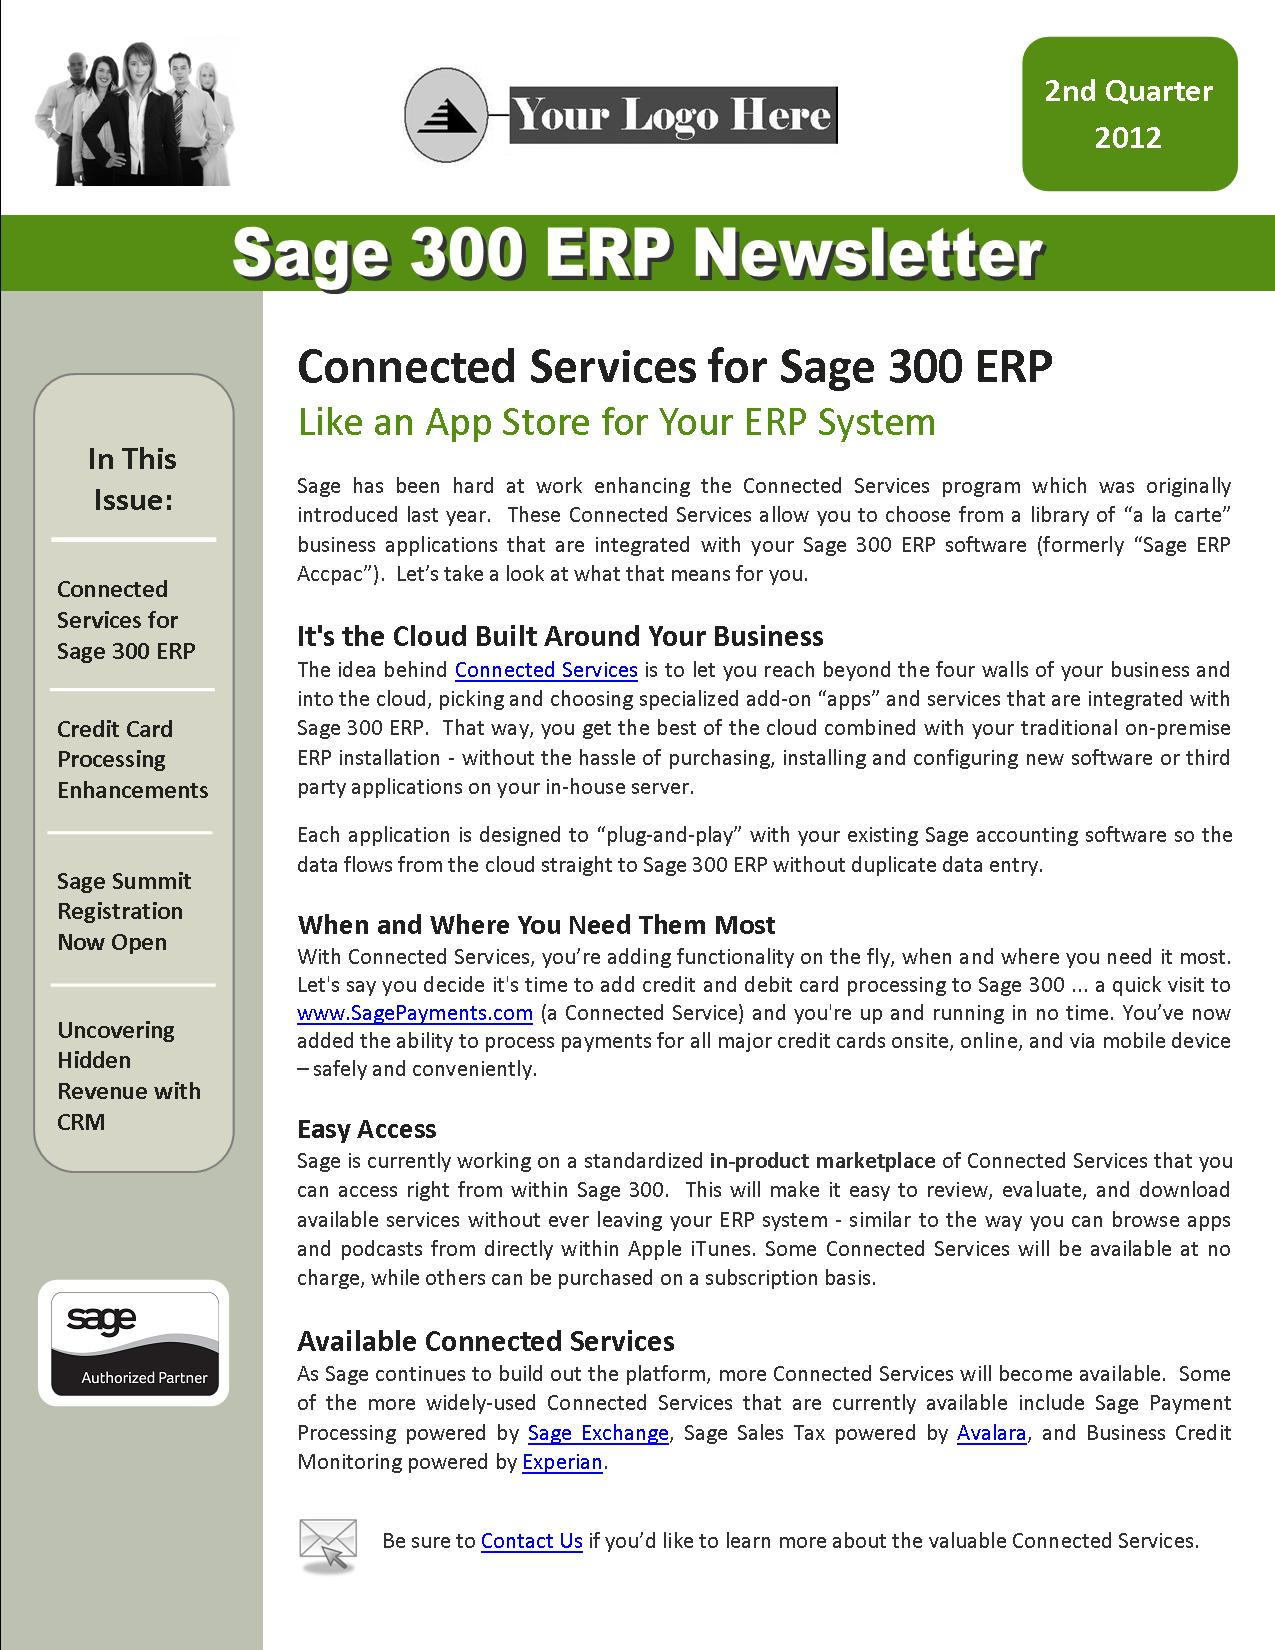 Sage 300 ERP Newsletter - 2nd Quarter